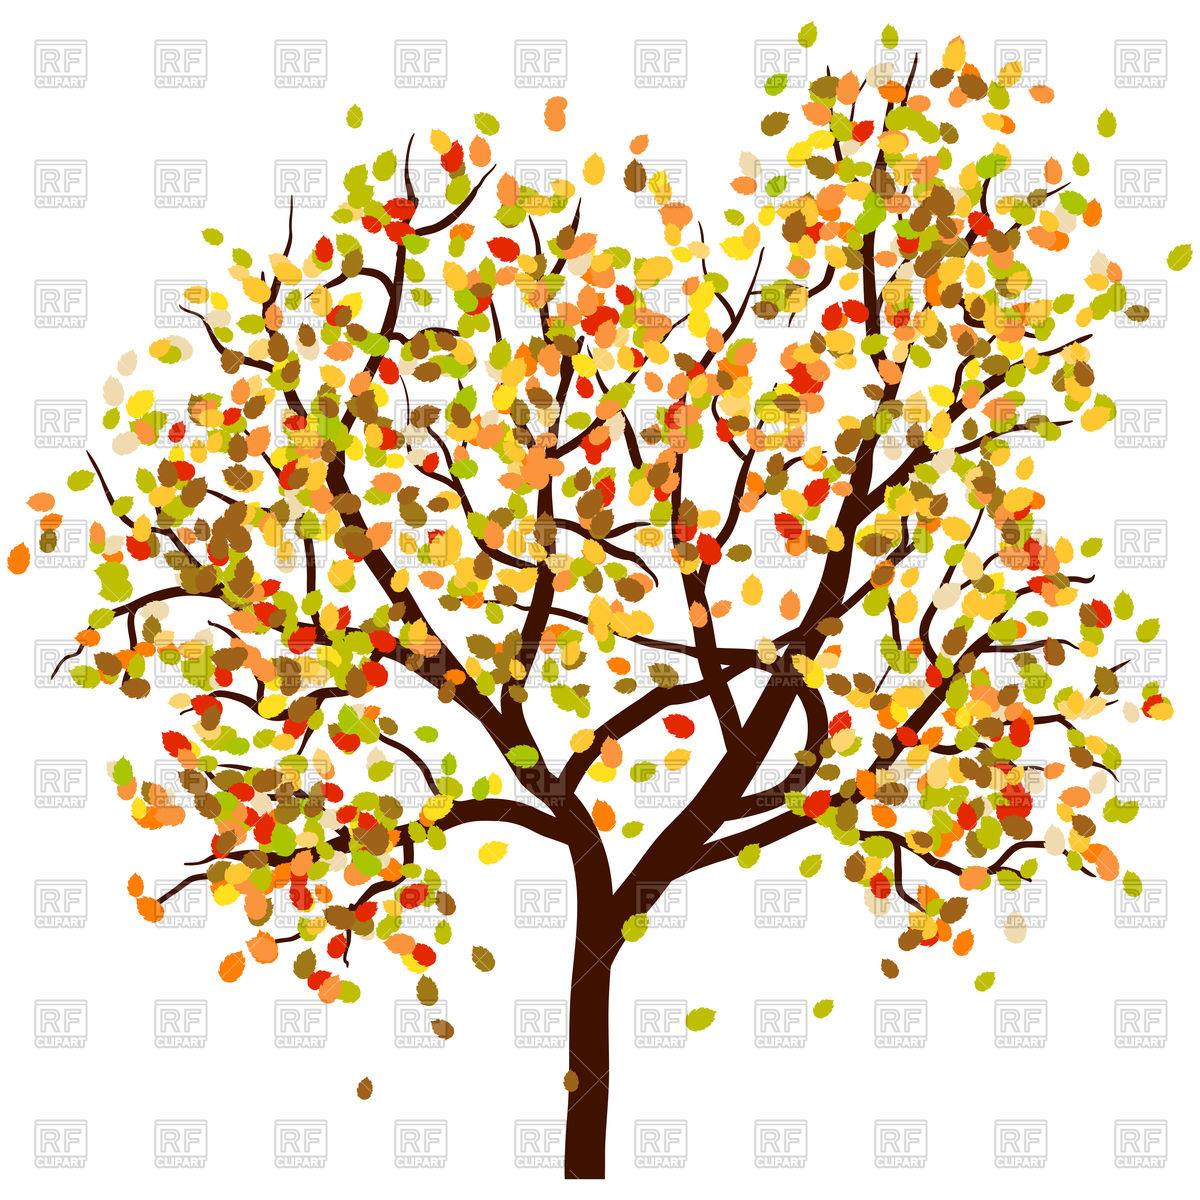 Autumn birch tree with falling leaves Vector Image #106814.